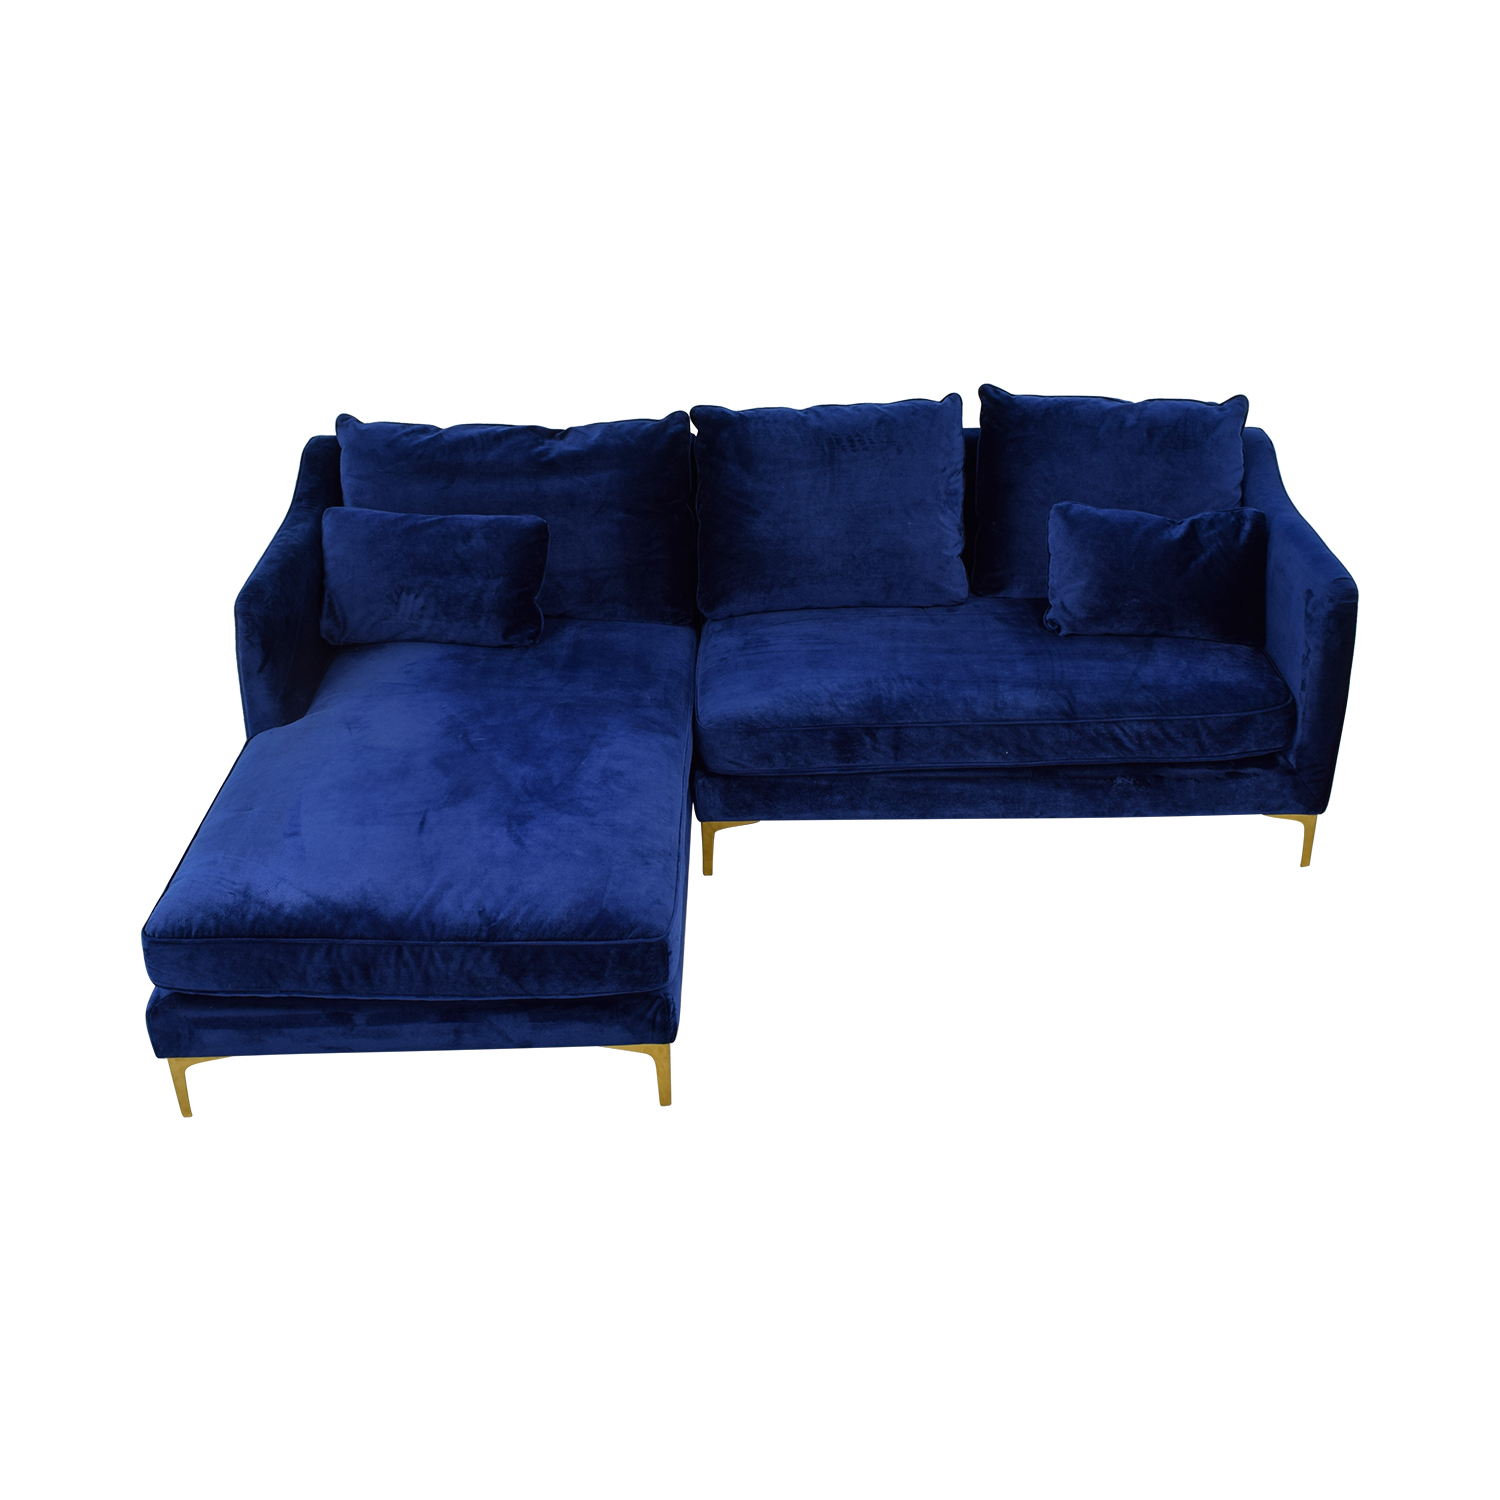 buy Caitlin Oxford Blue Left Chaise Sectional